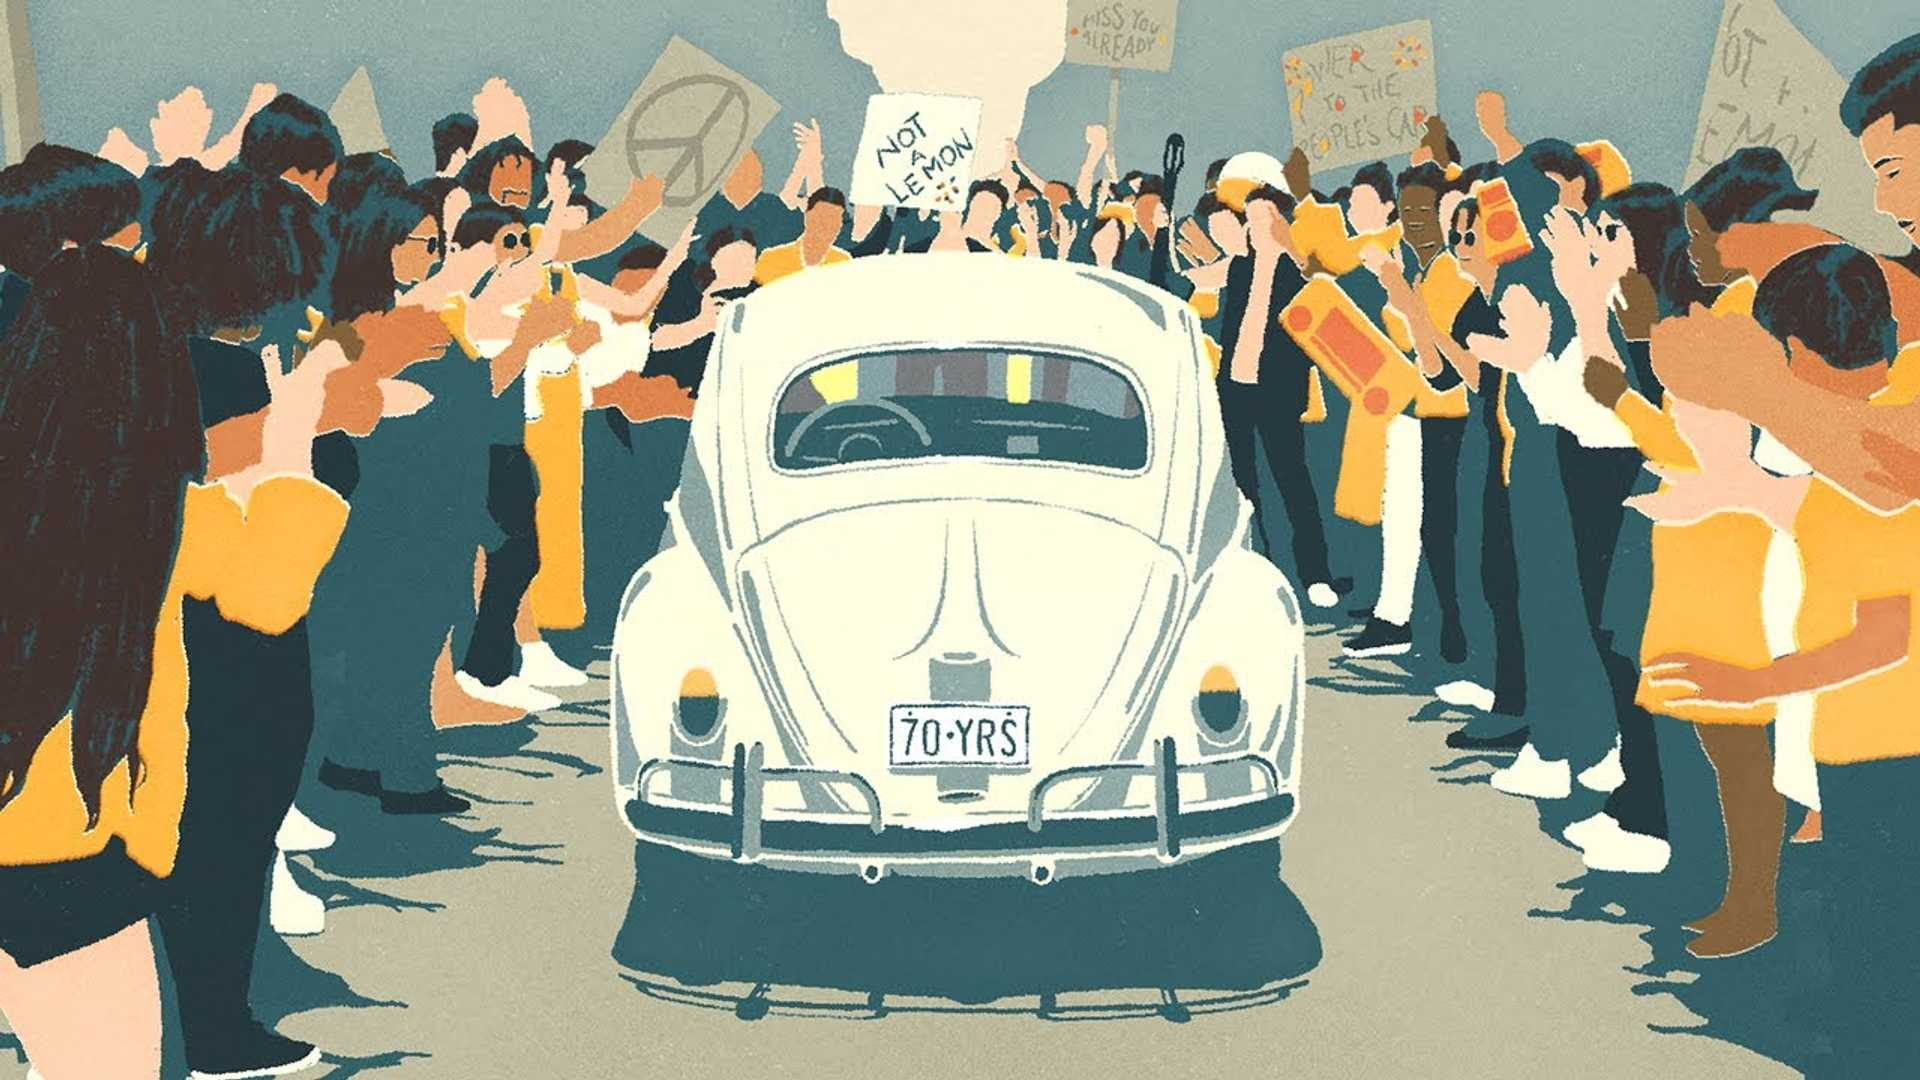 VW says goodbye to the Beetle with emotional video